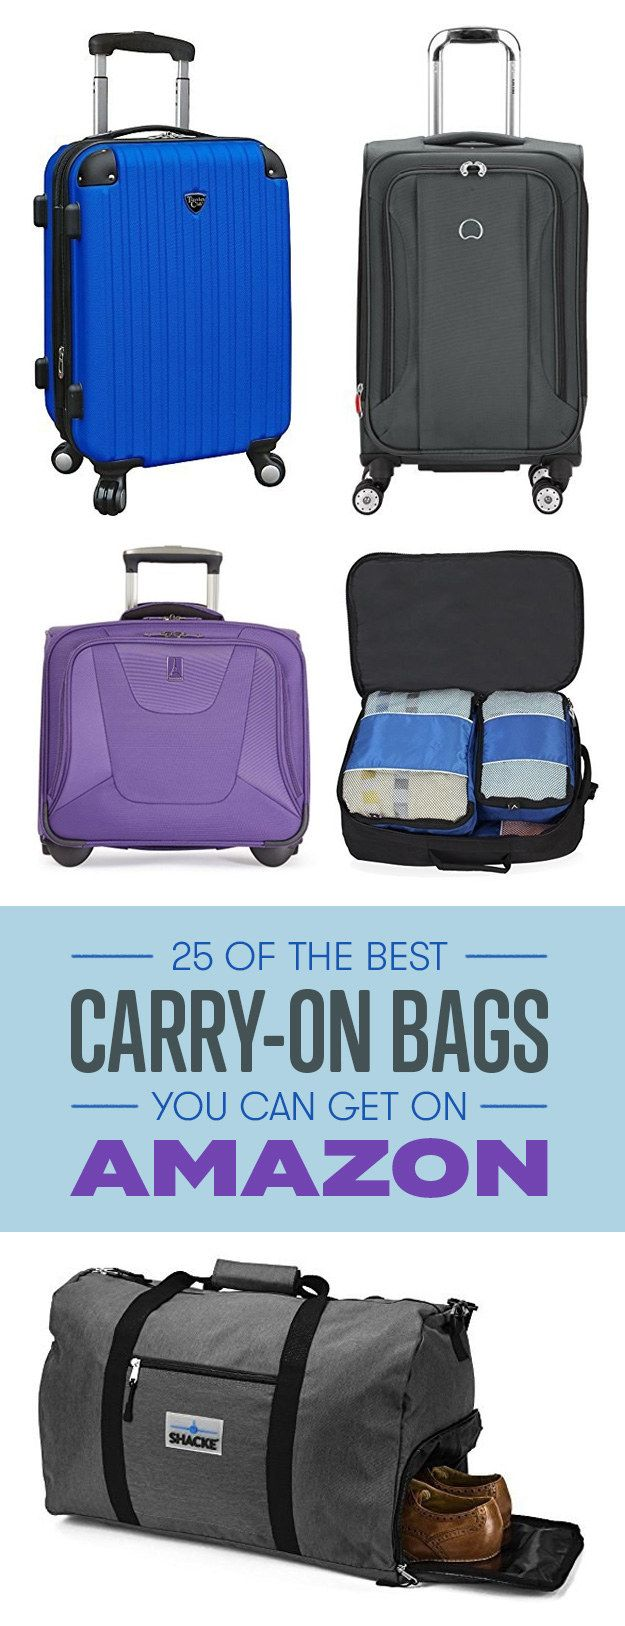 Who needs luggage when you have a carry-on that fits everything?